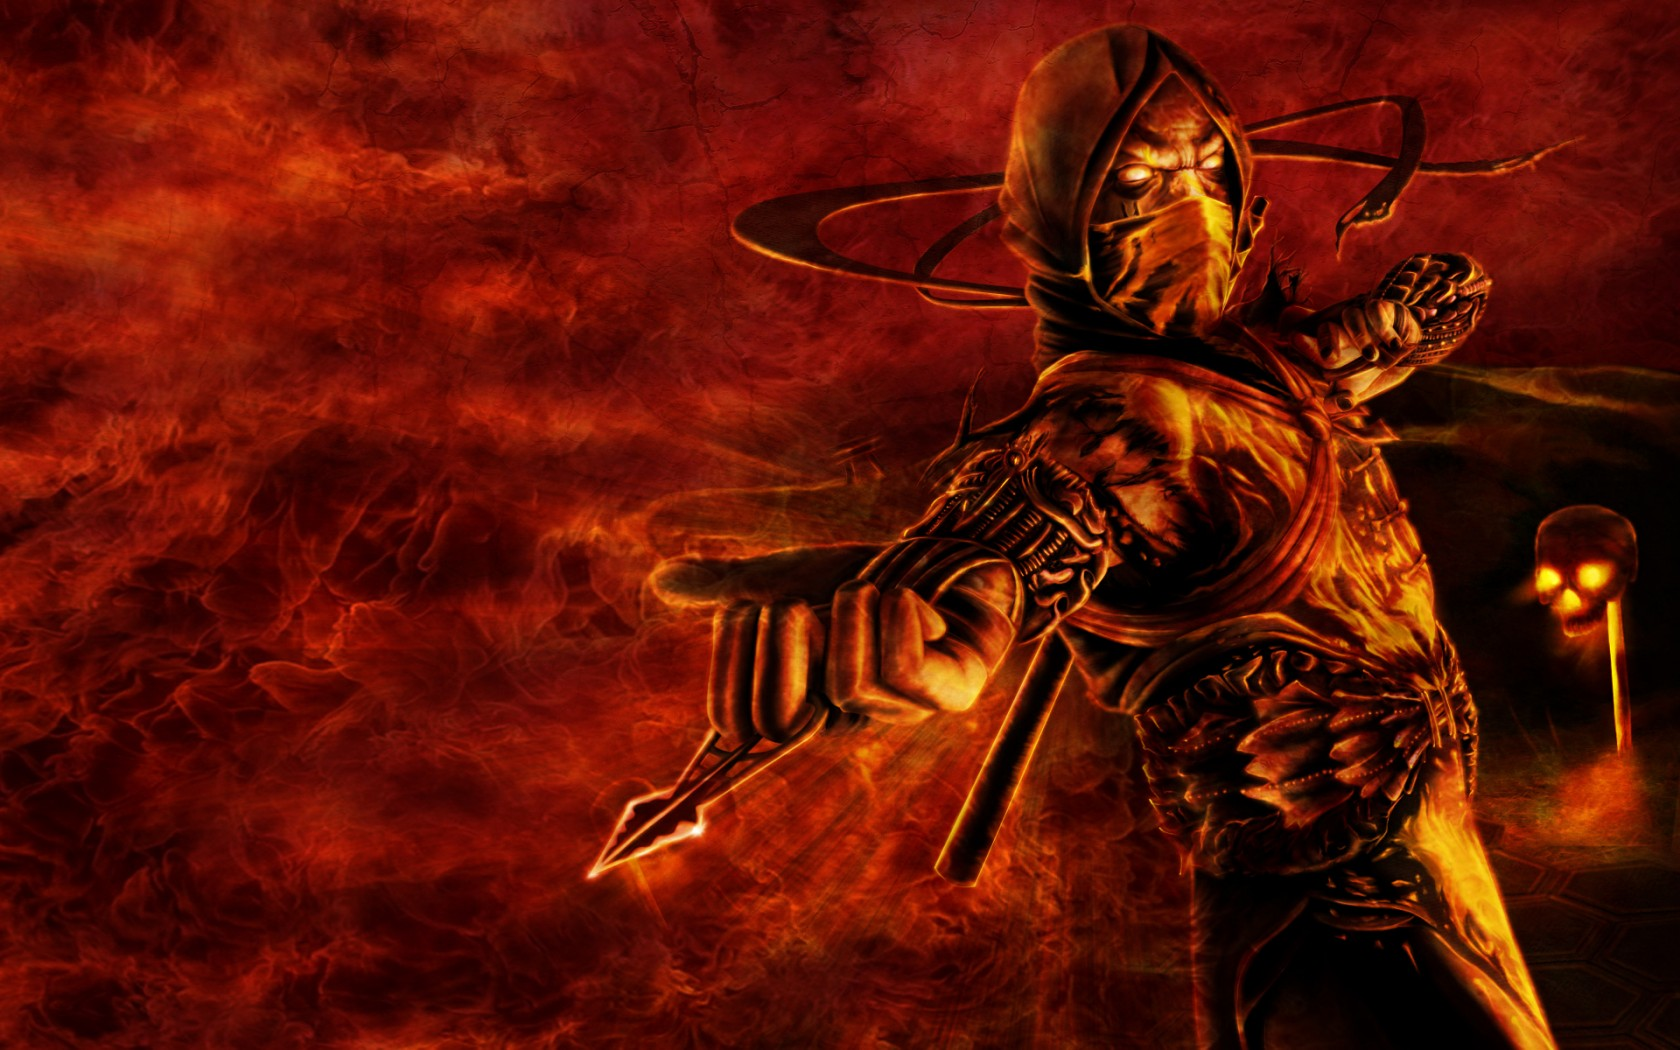 Scorpion Mortal Kombat Wallpaper Picture 1680x1050